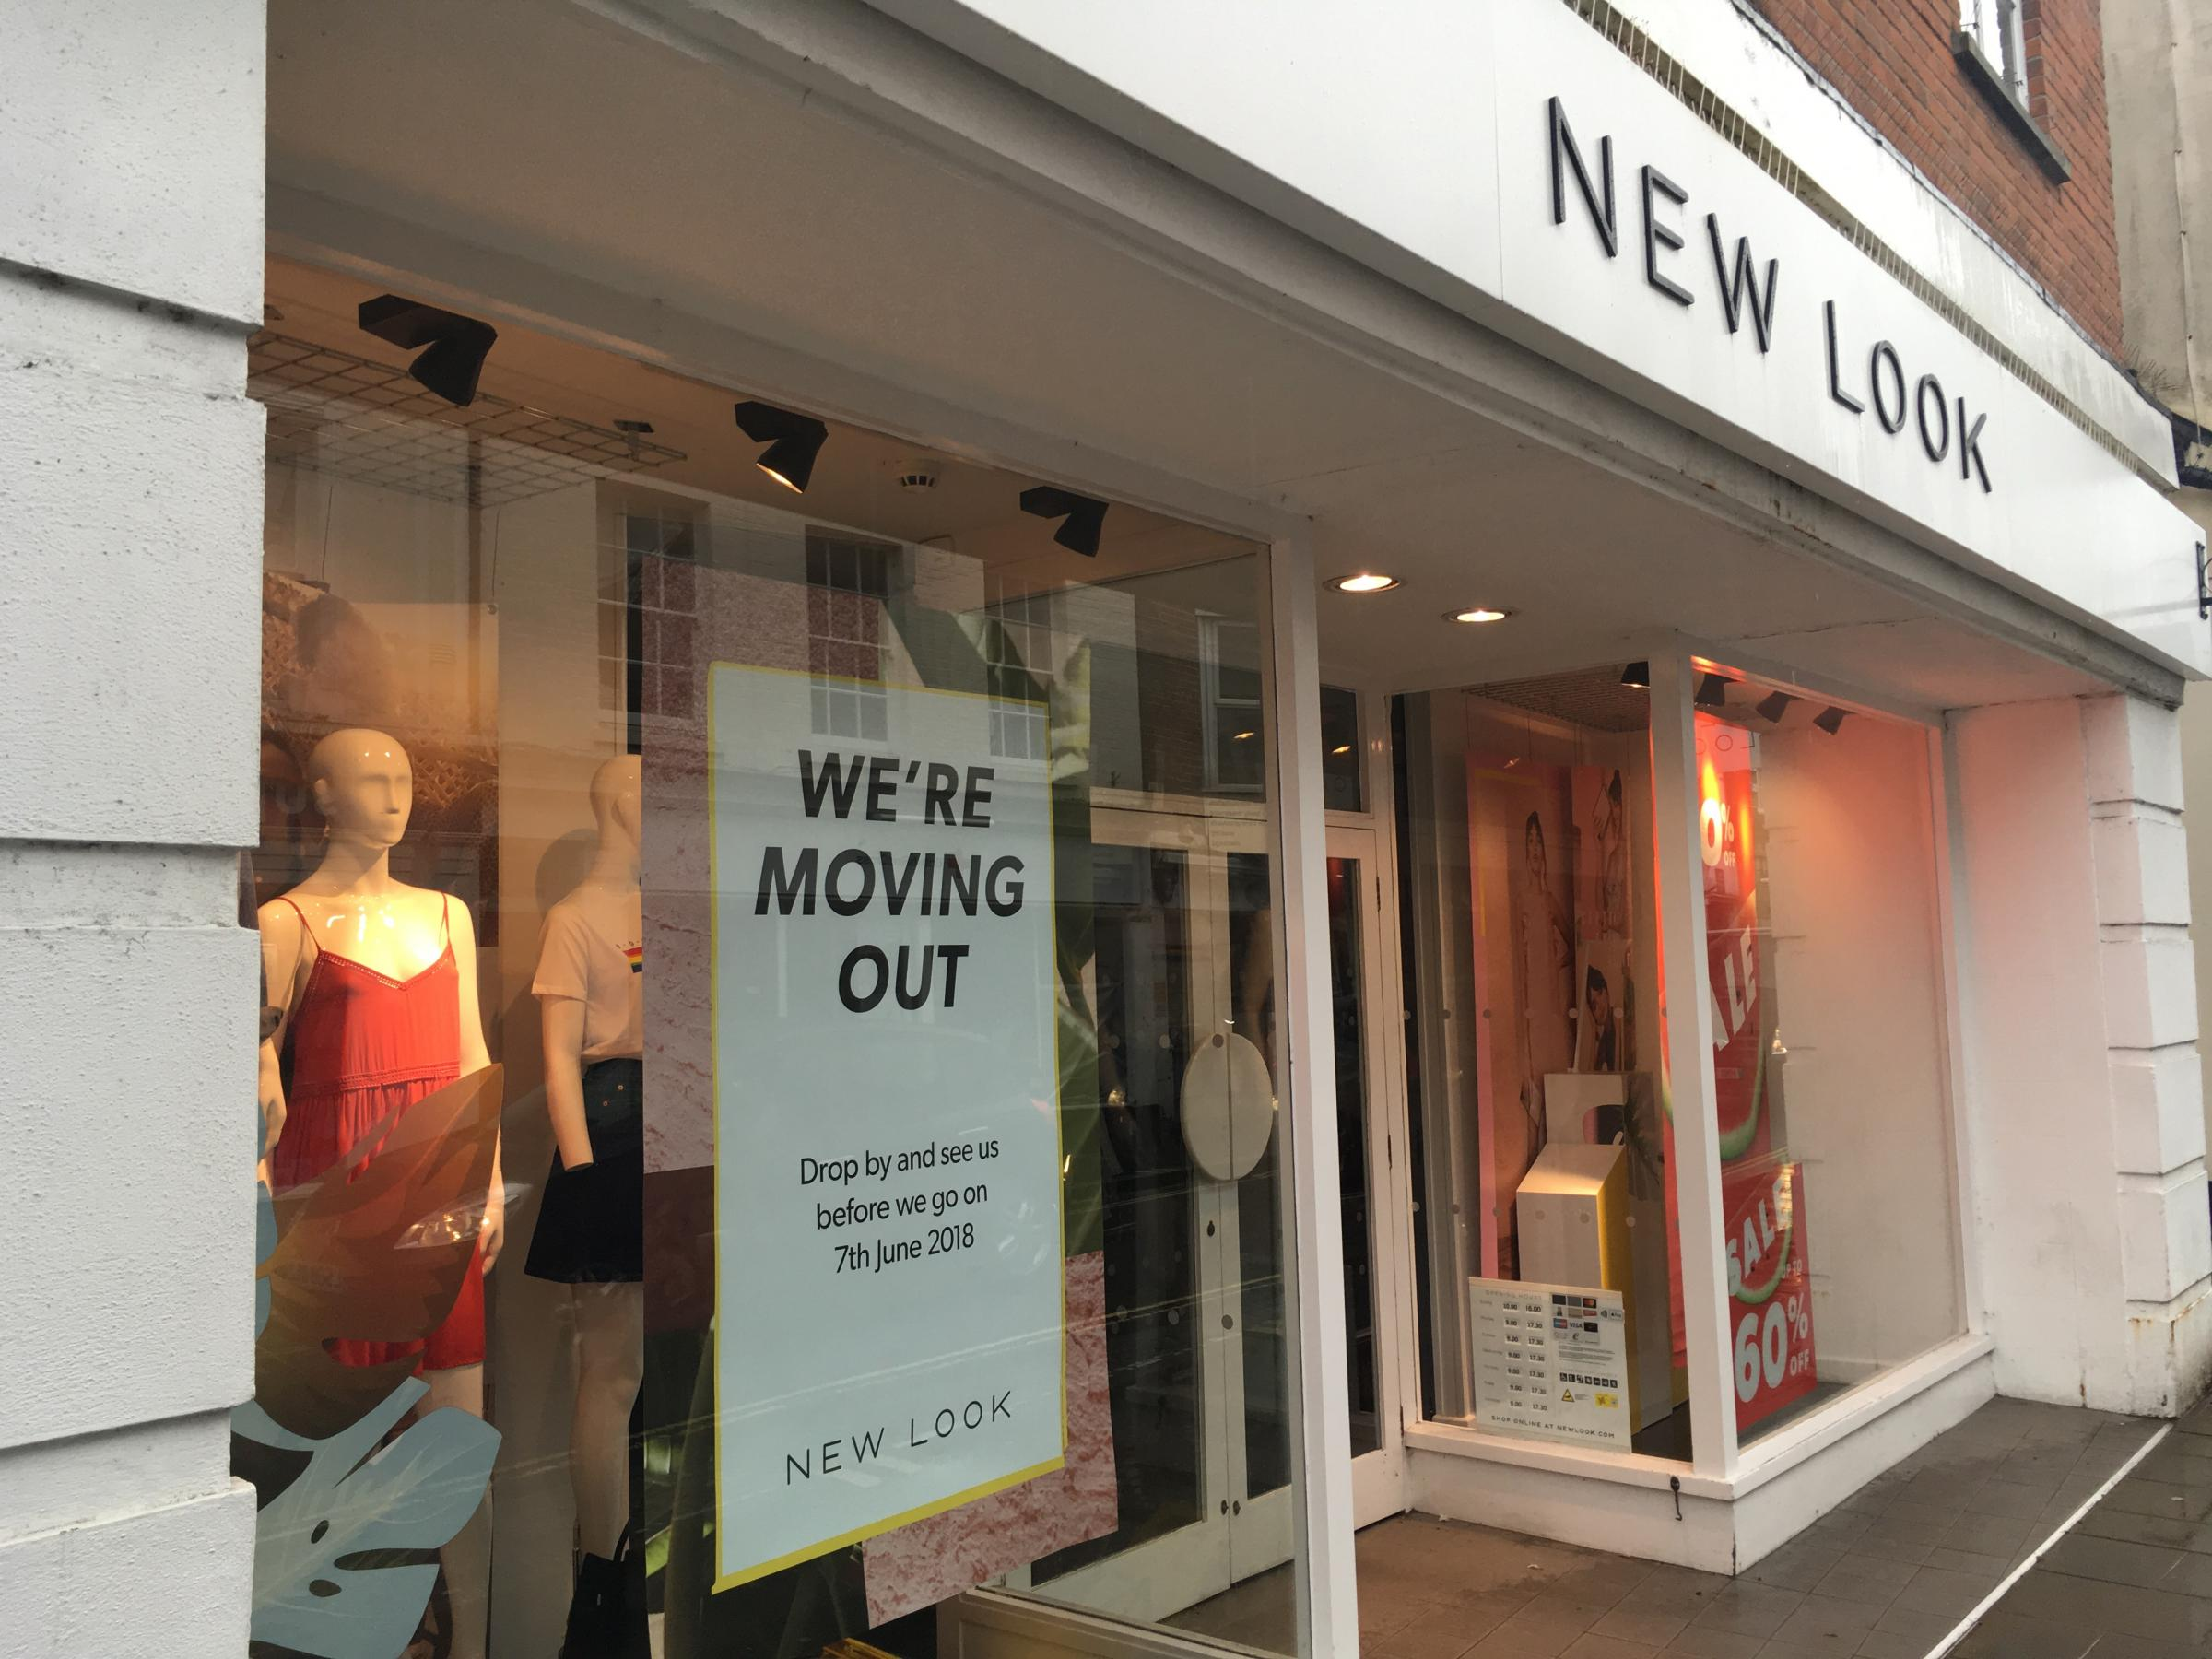 The New Look store in Romsey is to close.